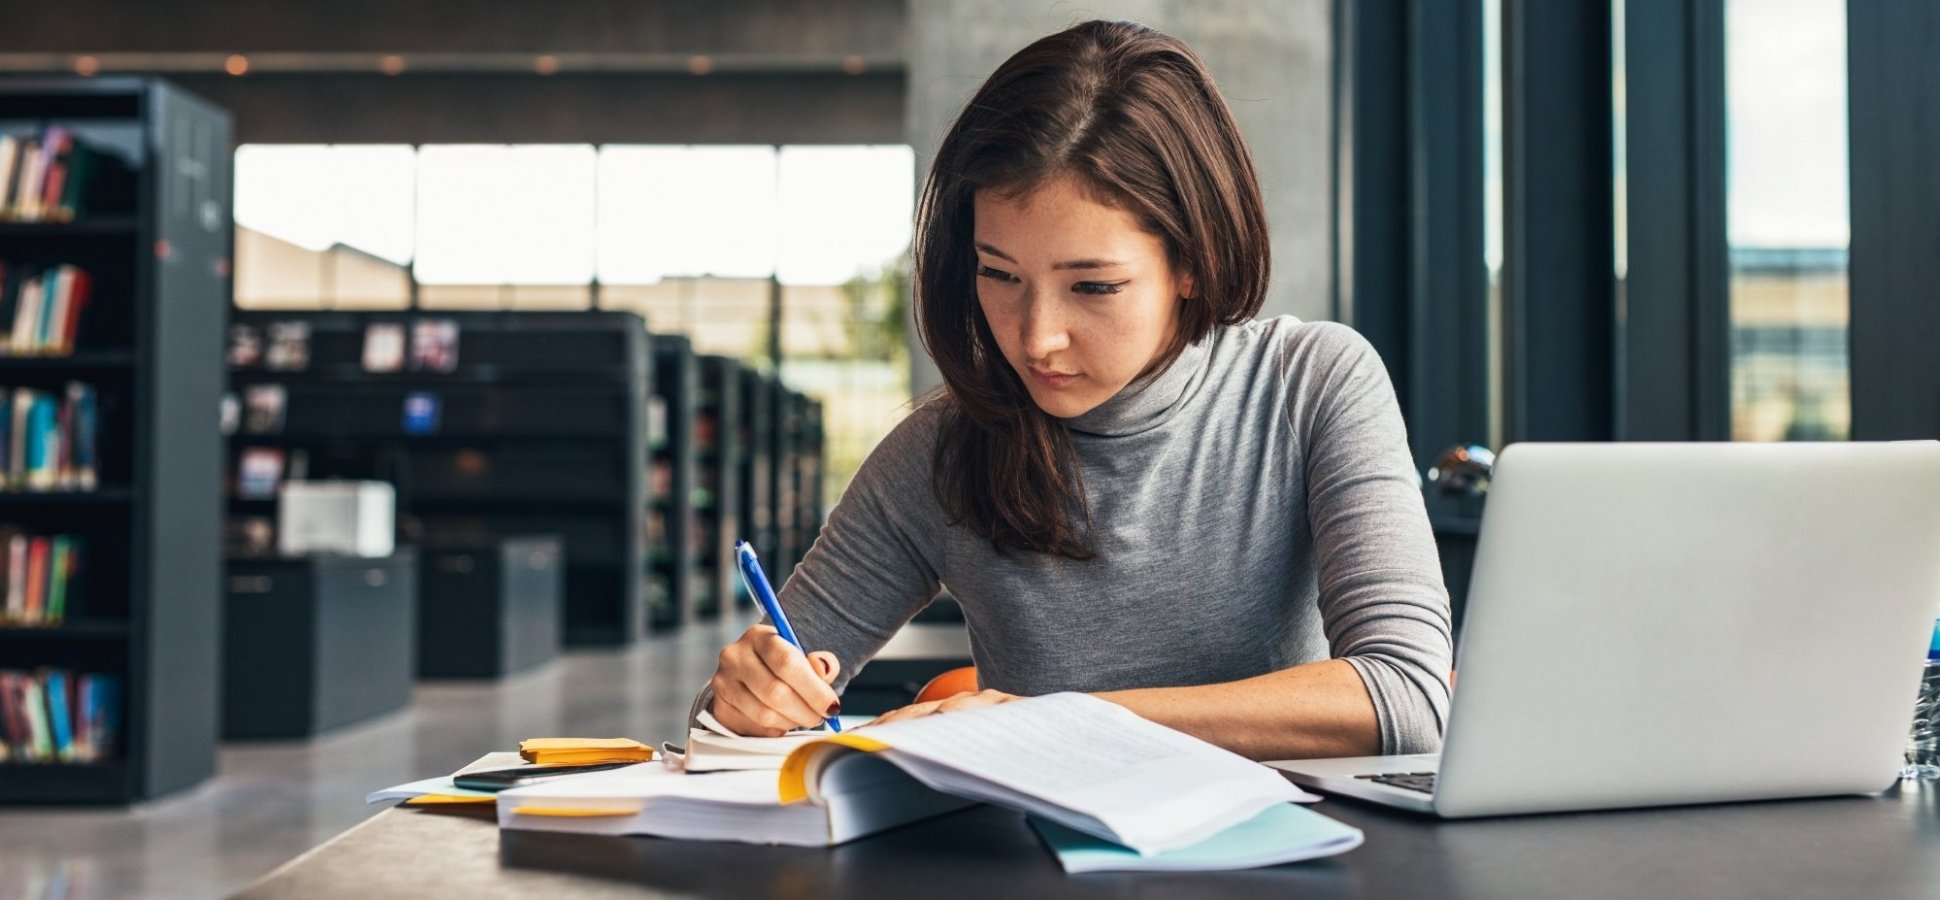 Ugh: Even Female Students Who Earn Outstanding Grades Still Won't Get the Job (Unless They're Really Likable)